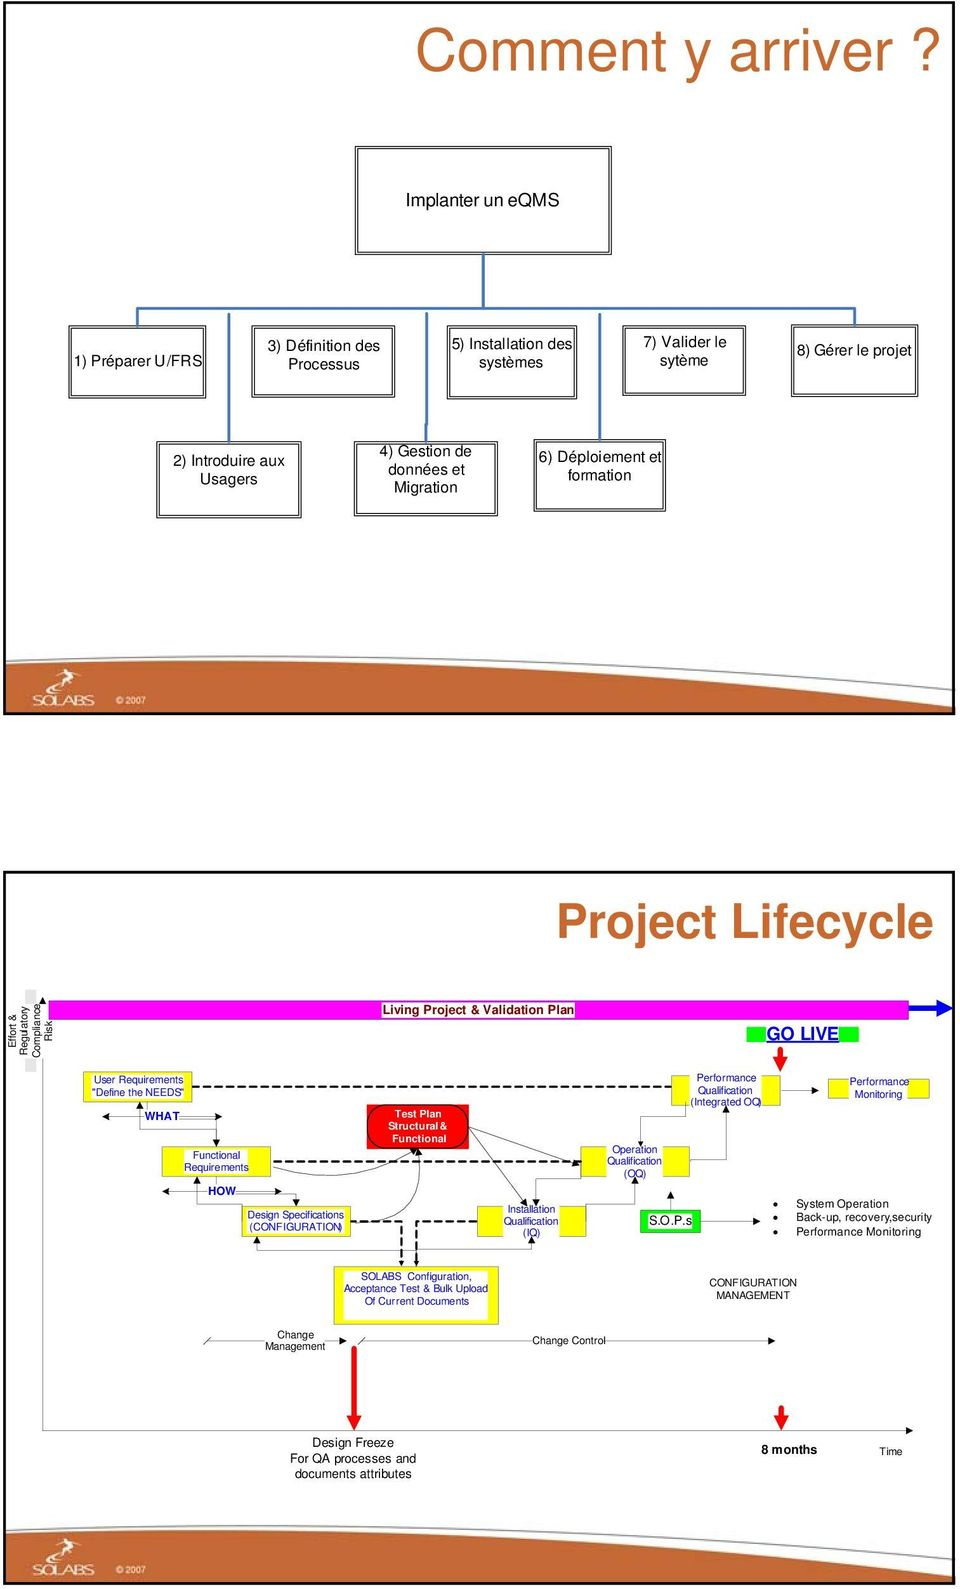 "Déploiement et formation Project Lifecycle Effort & Regulatory Compliance Risk Living Project & Validation Plan GO LIVE User Requirements ""Define the NEEDS"" WHAT Functional Requirements HOW Design"